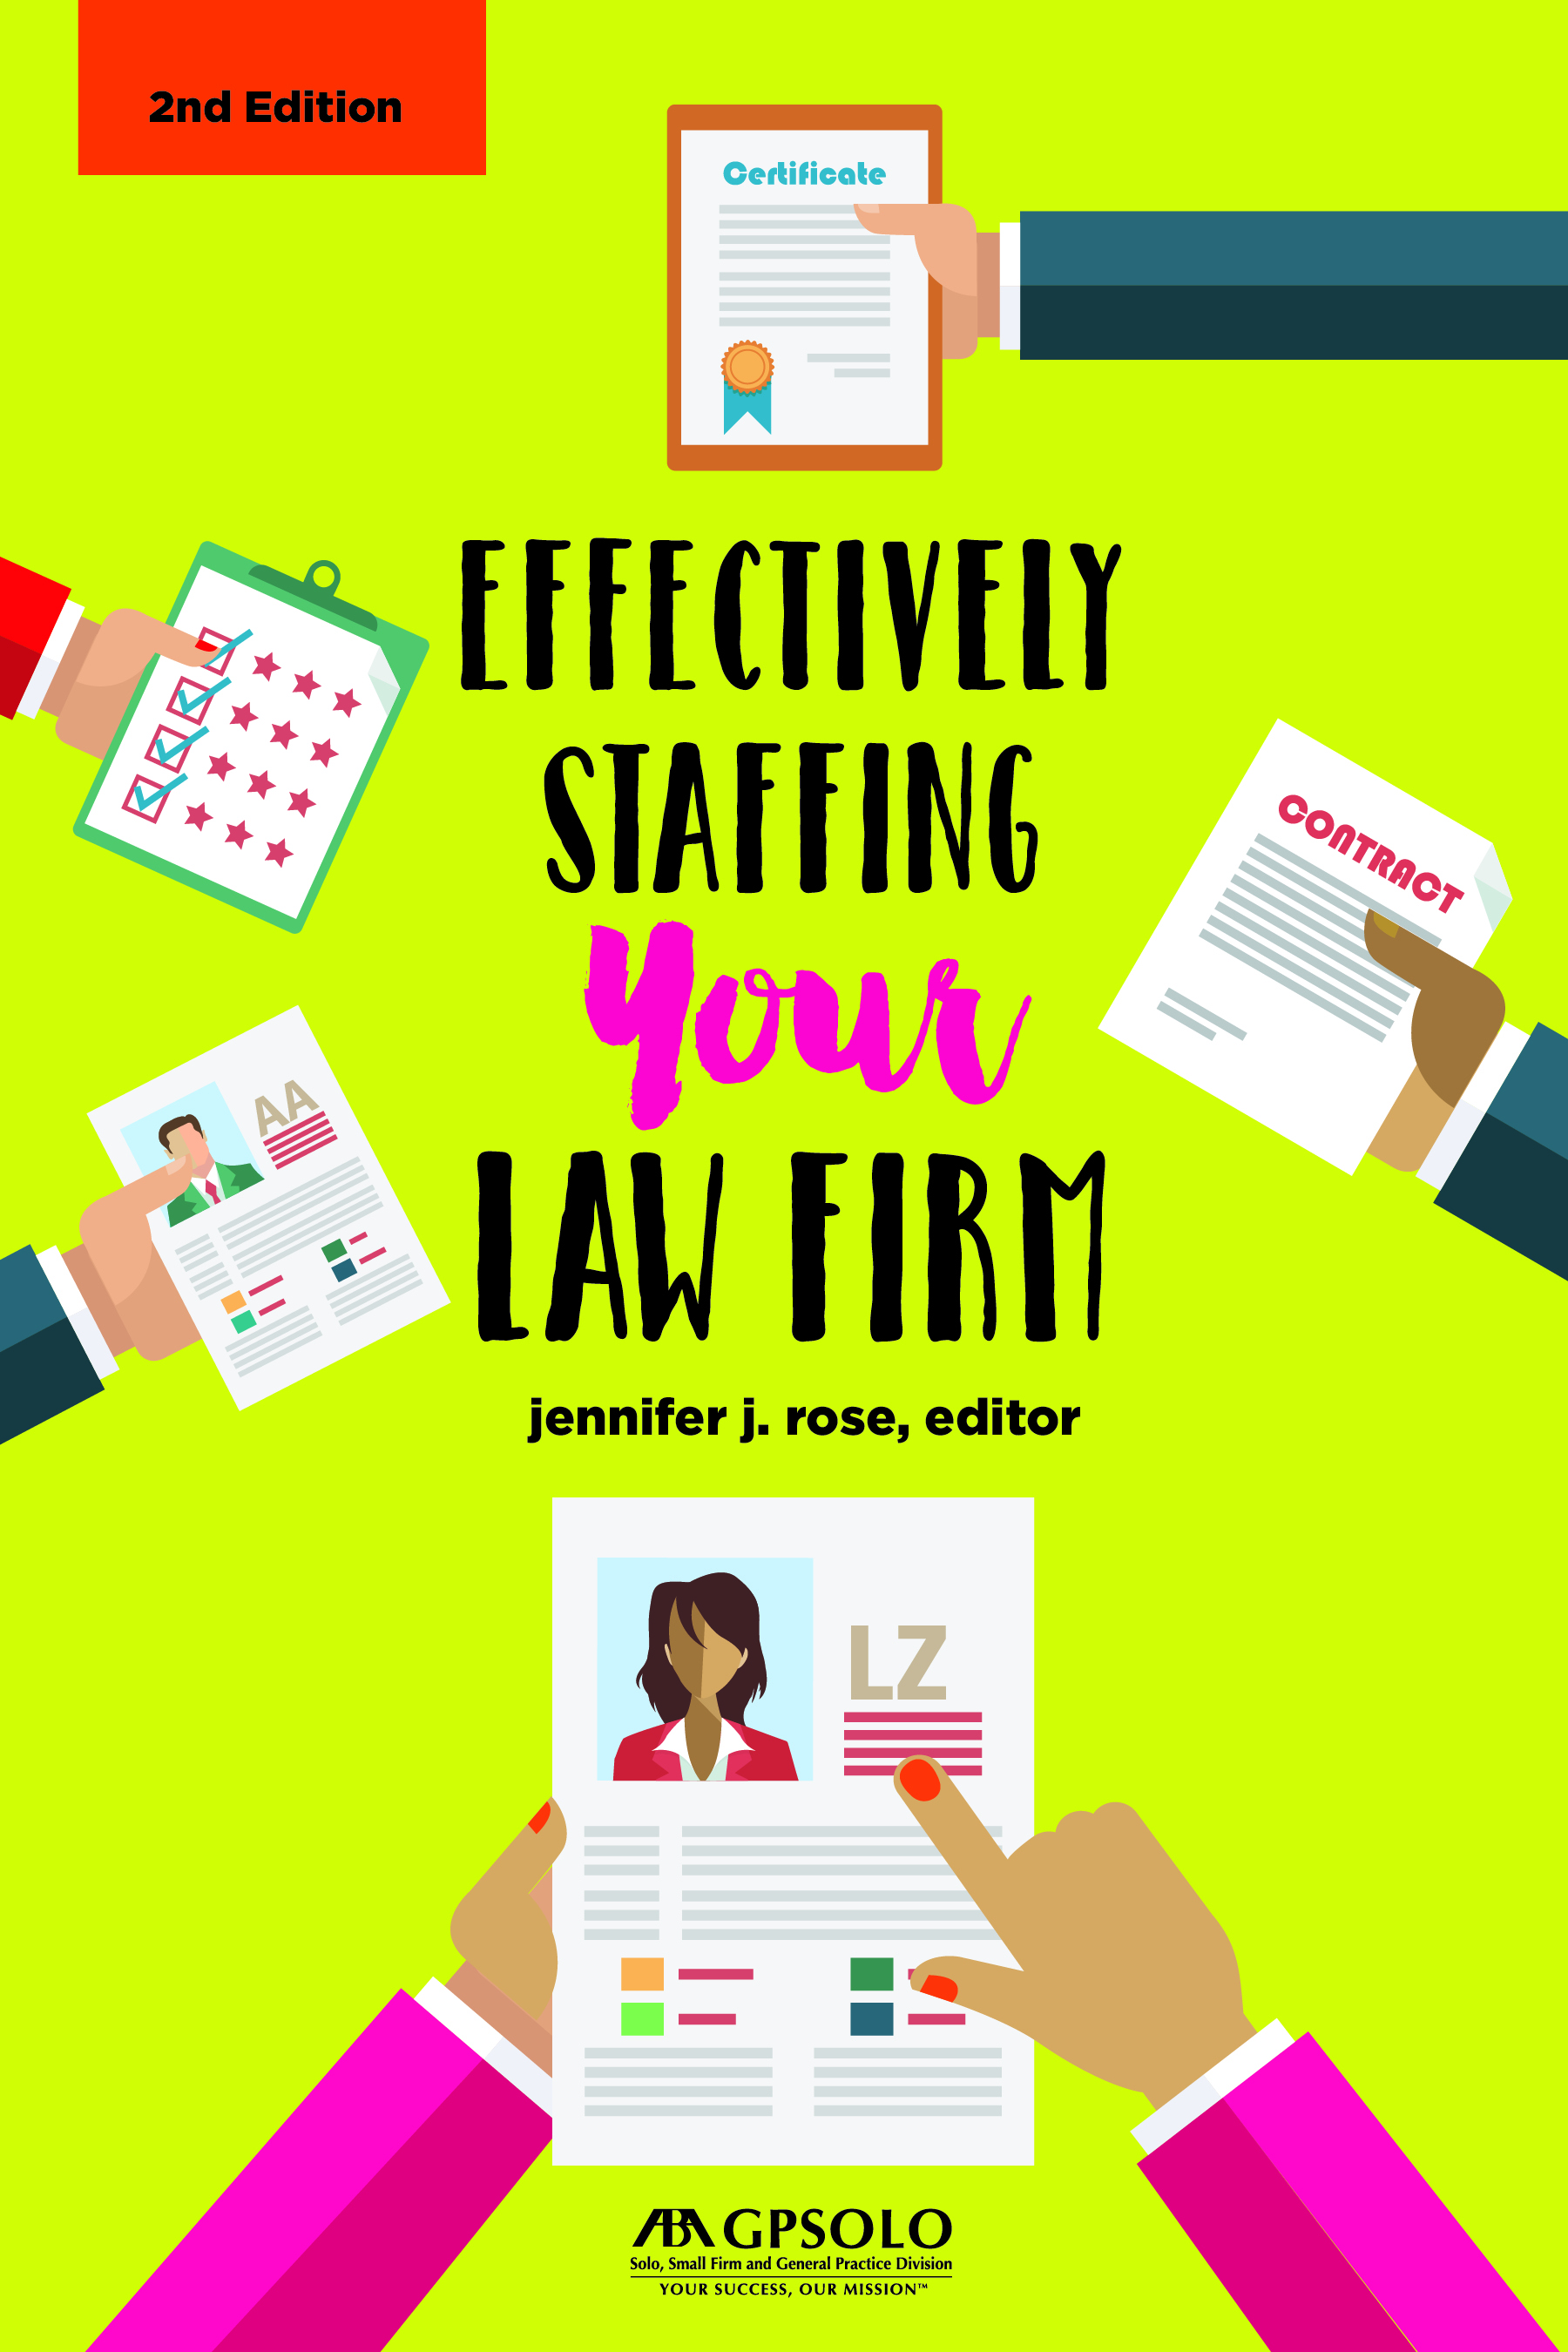 Effectively Staffing Your Law Firm, 2nd Edition